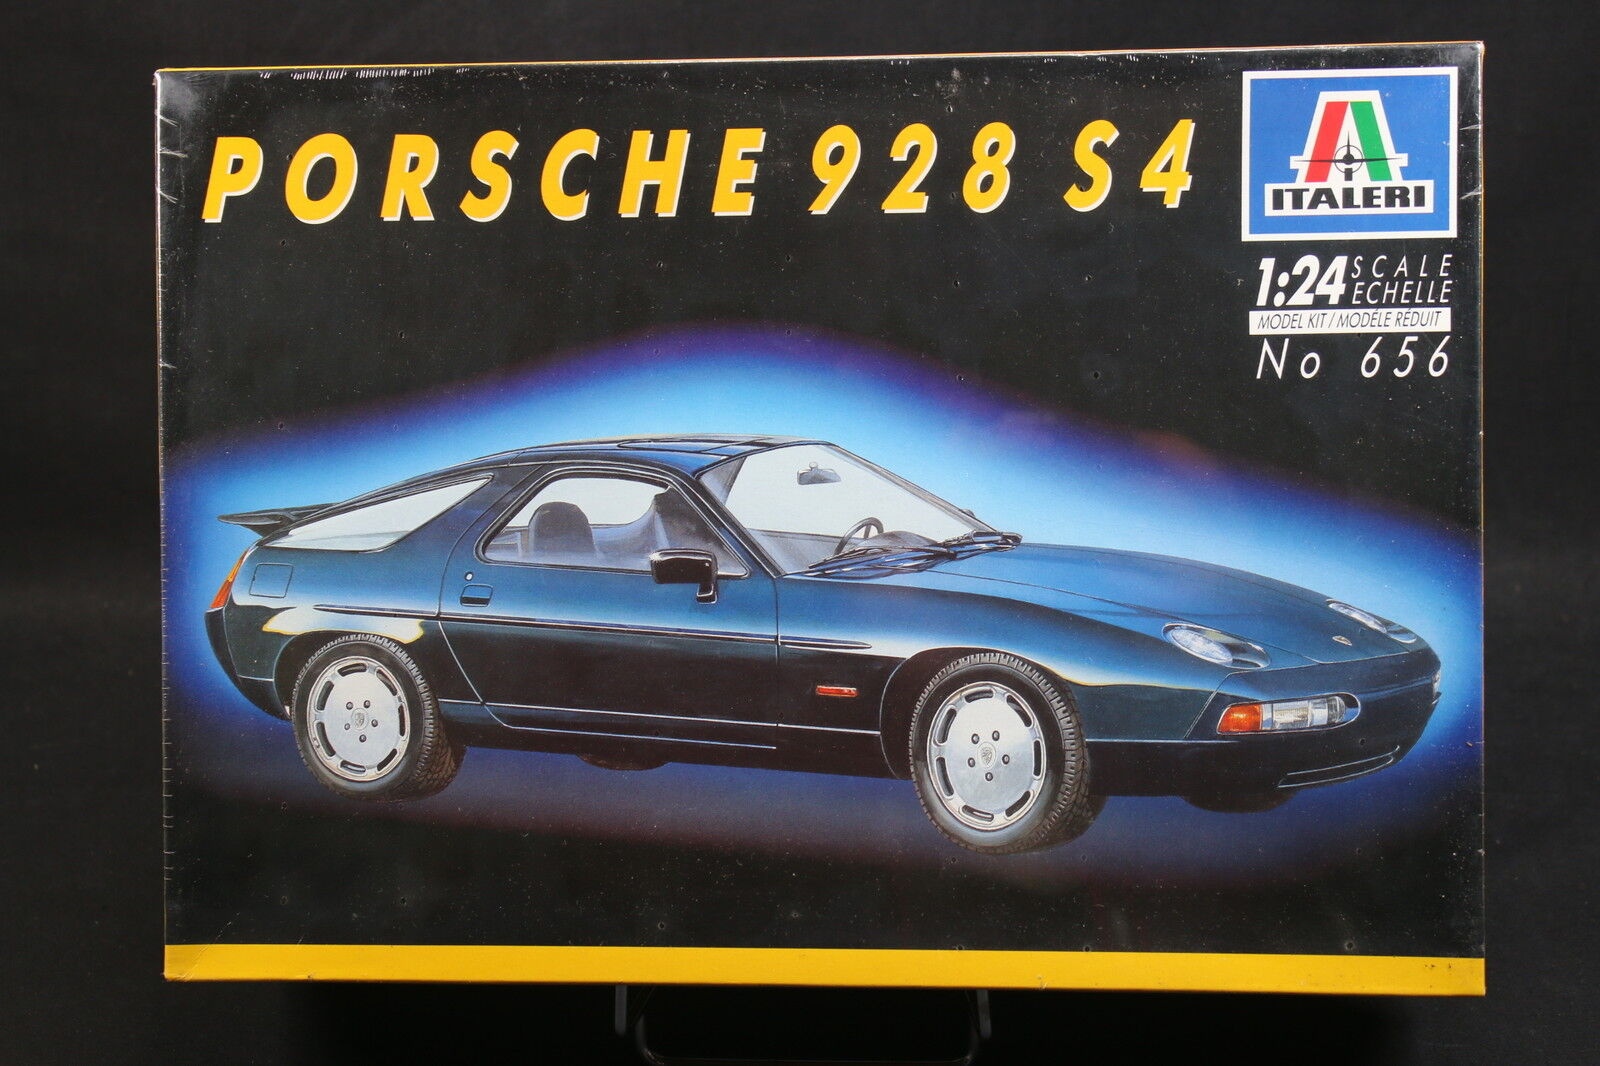 Xw054 italeri 1 24 car model 656 porsche 928 s4-ptitoys